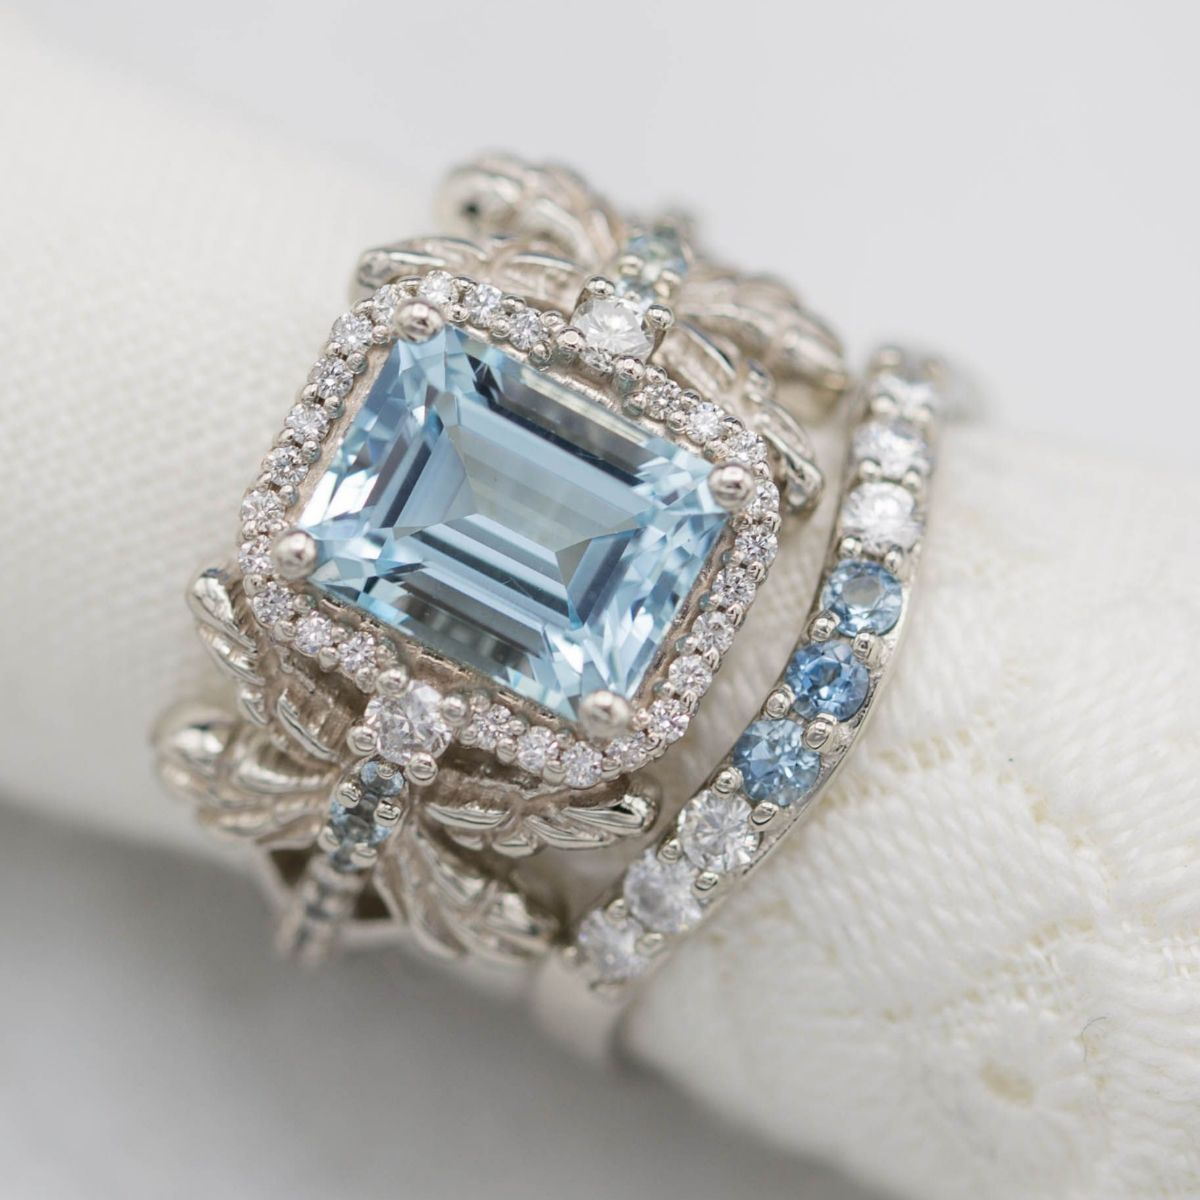 ring blake cut aquamarine rings details ori engagement lively aqua oval